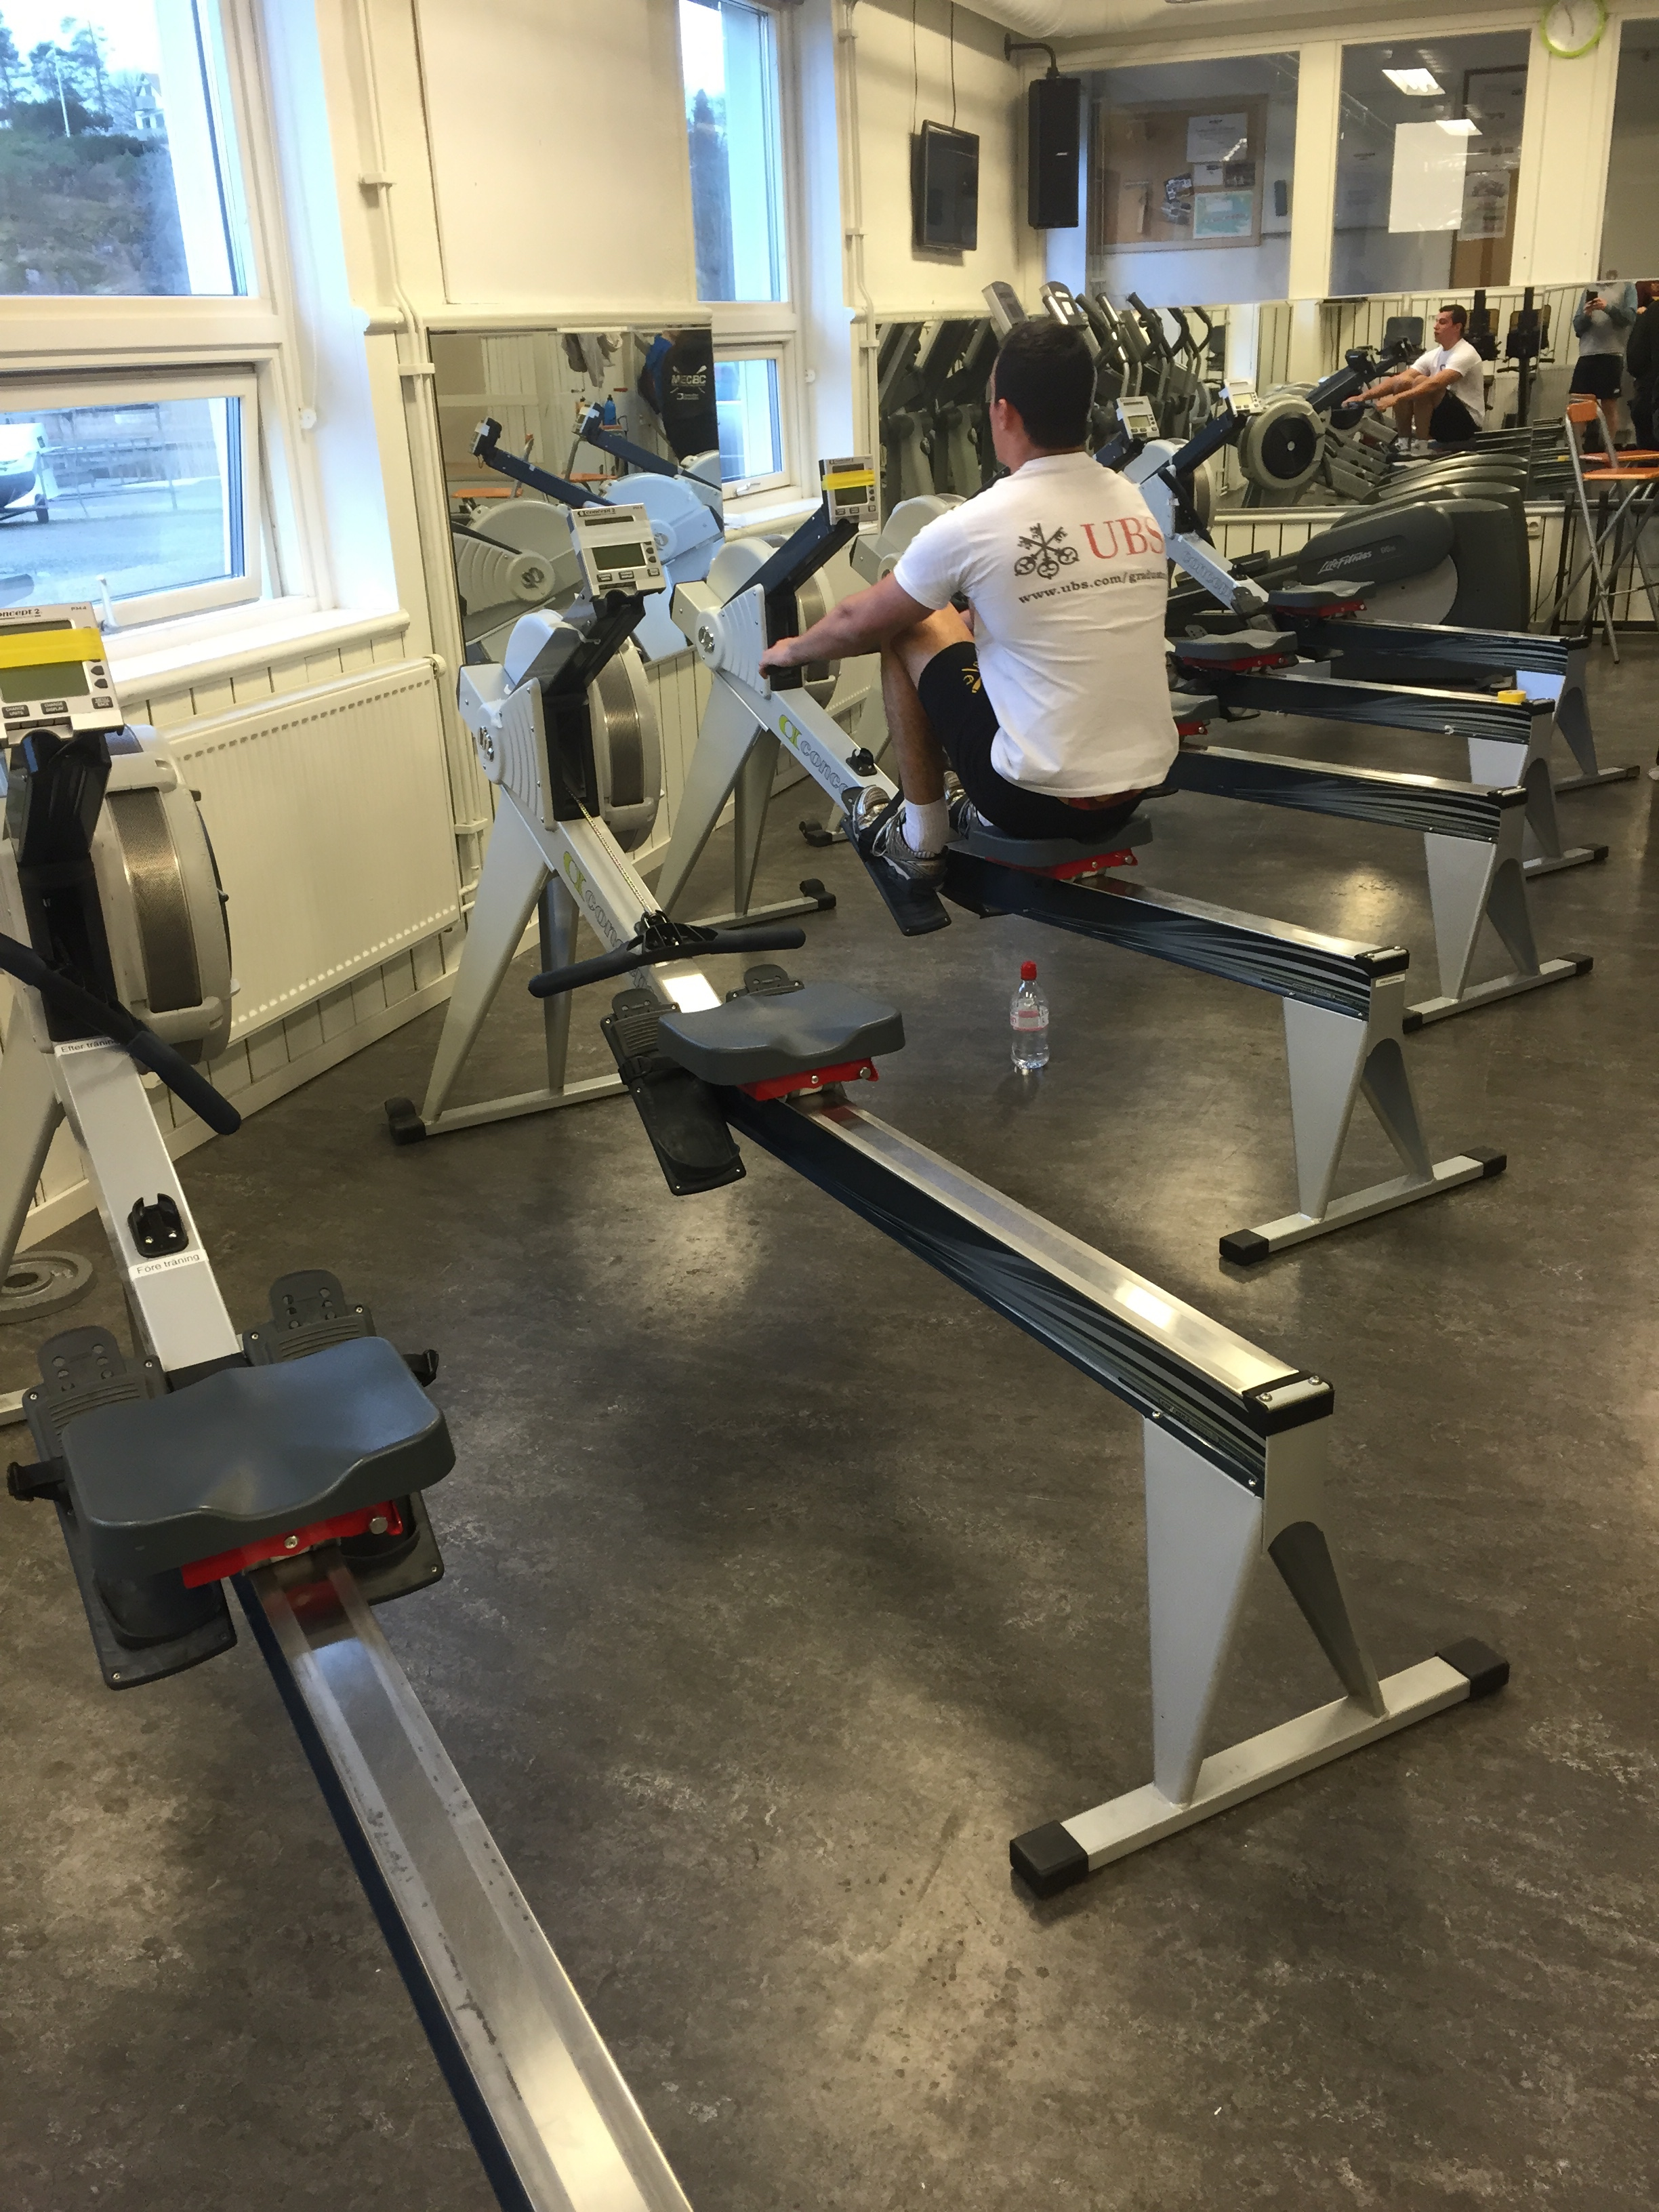 Erging for one.